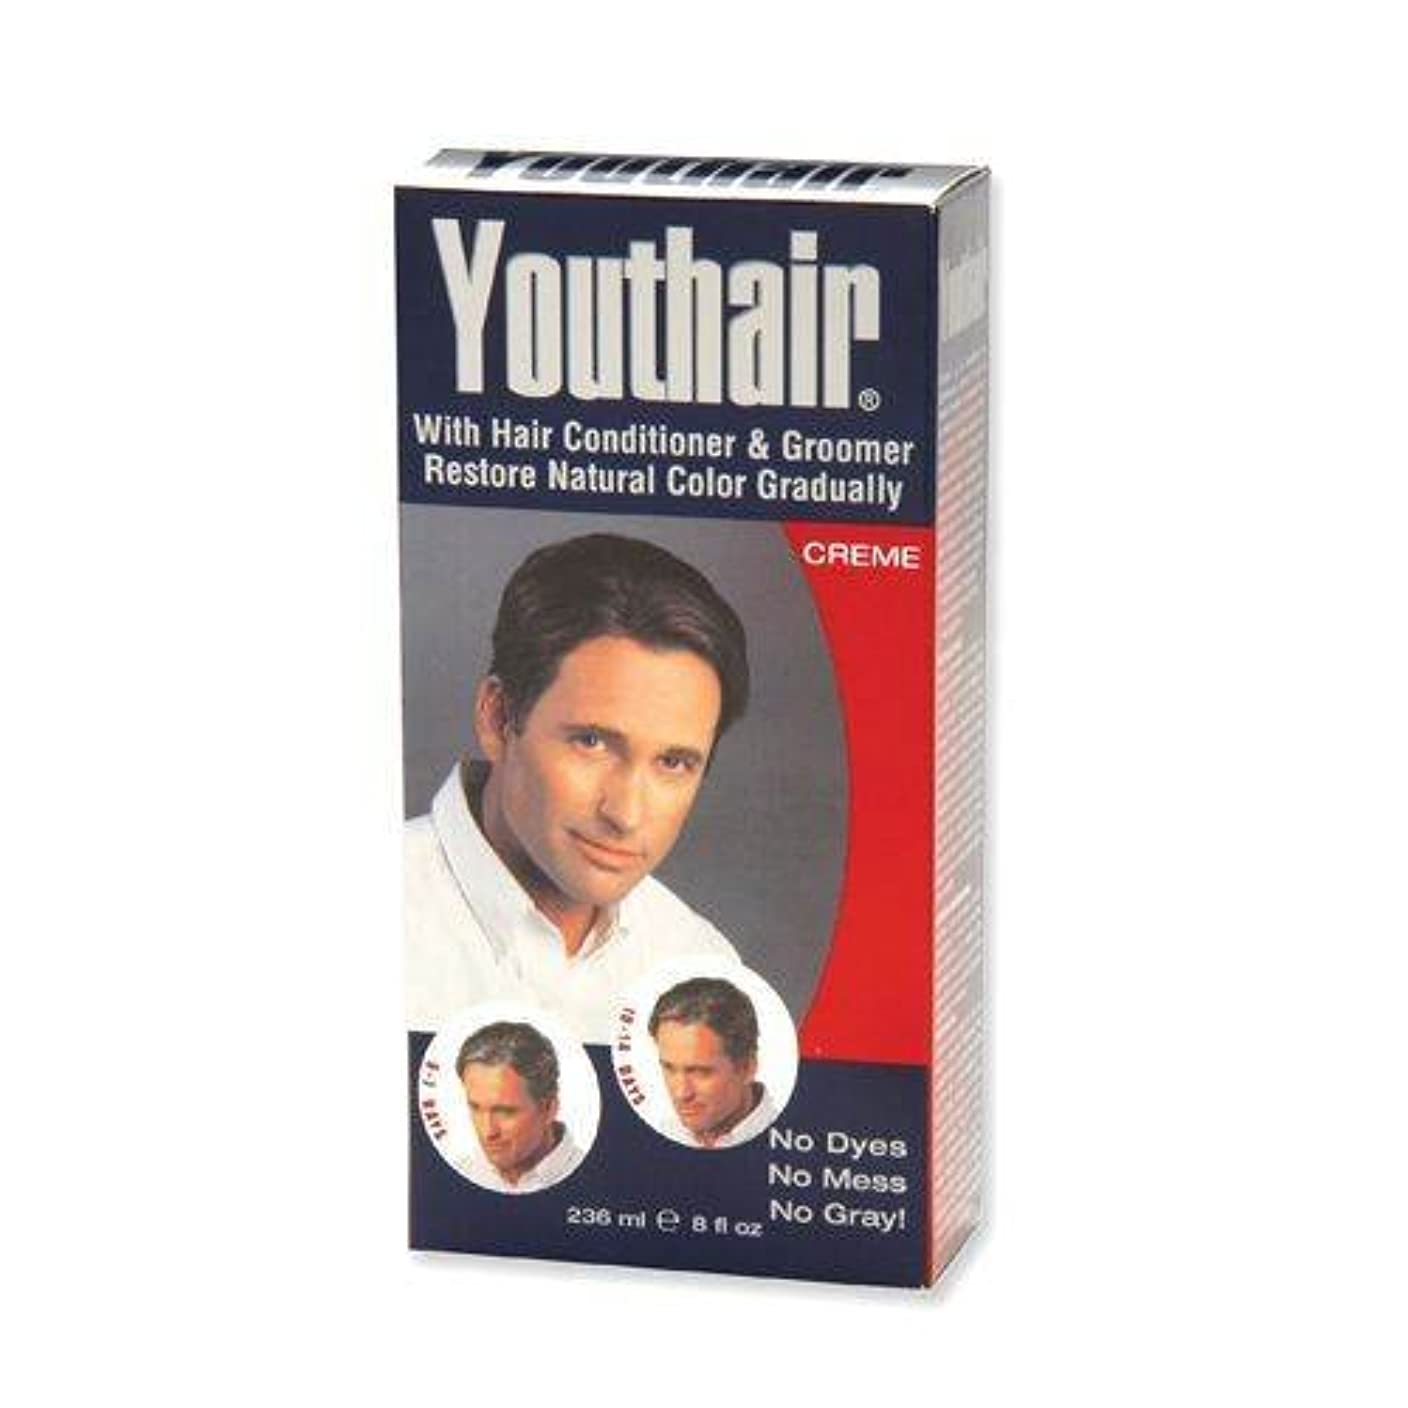 写真融合乏しいYOUTHAIR Creme for Men with Hair Conditioner & Groomer Restore Natural Color Gradually 8oz/236ml by Youthair